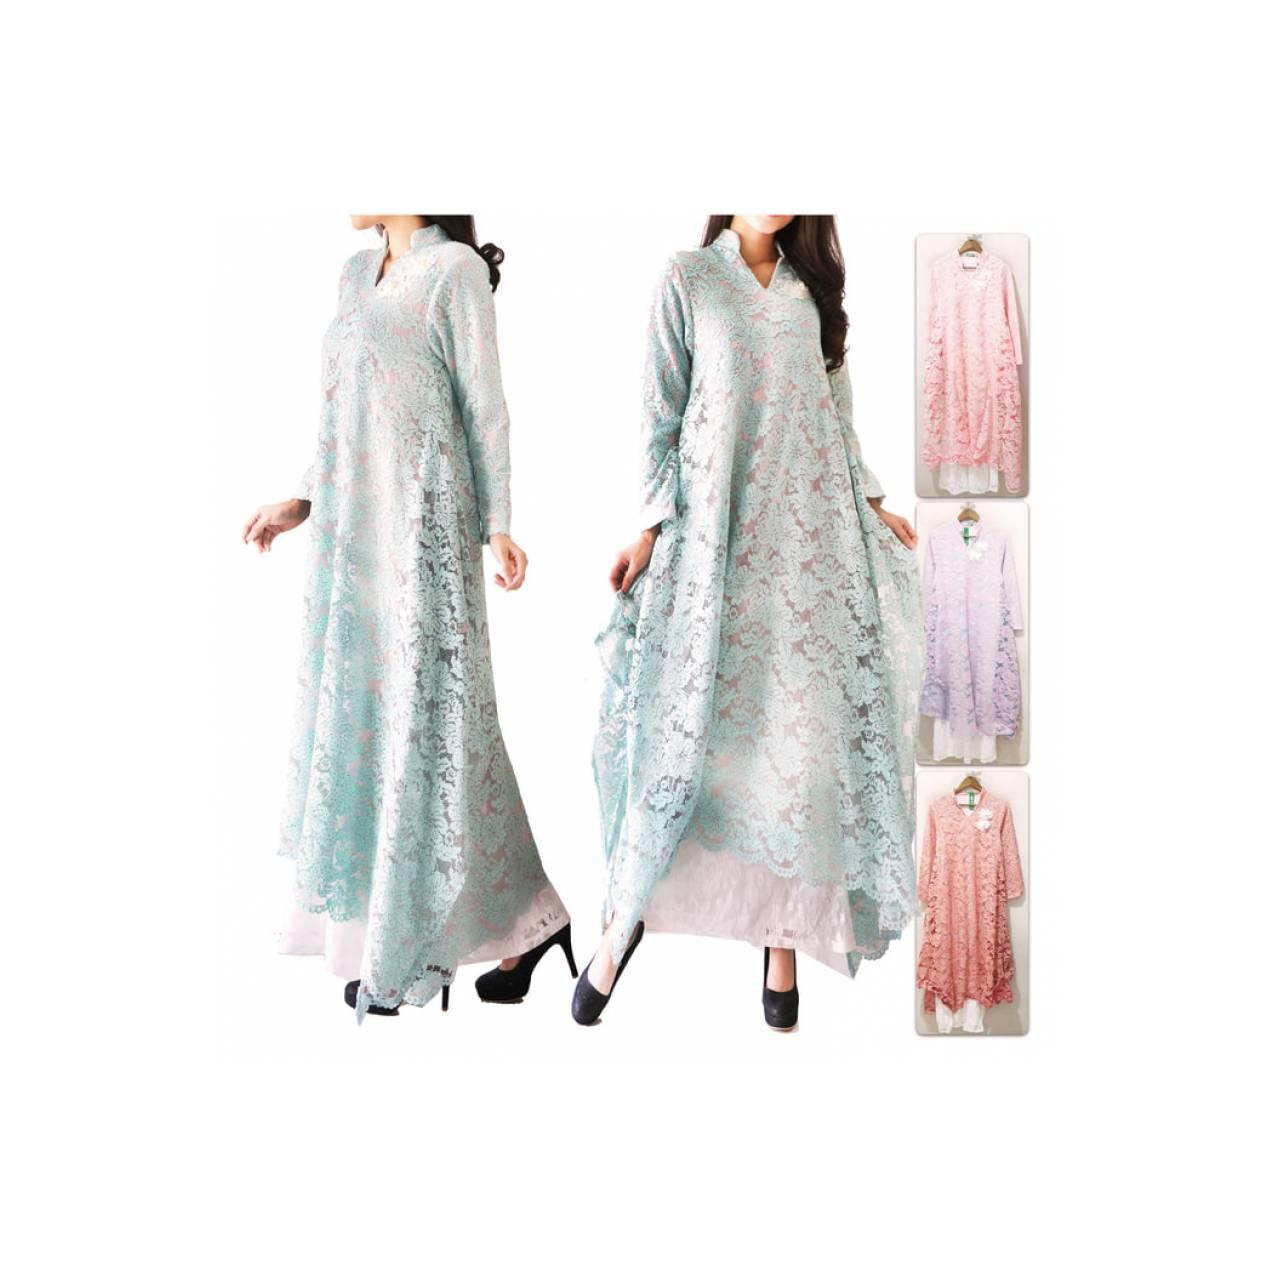 Gamis Maxi Full Brukat Zaskia / Maxi Dress / Lace Dresses / 11727